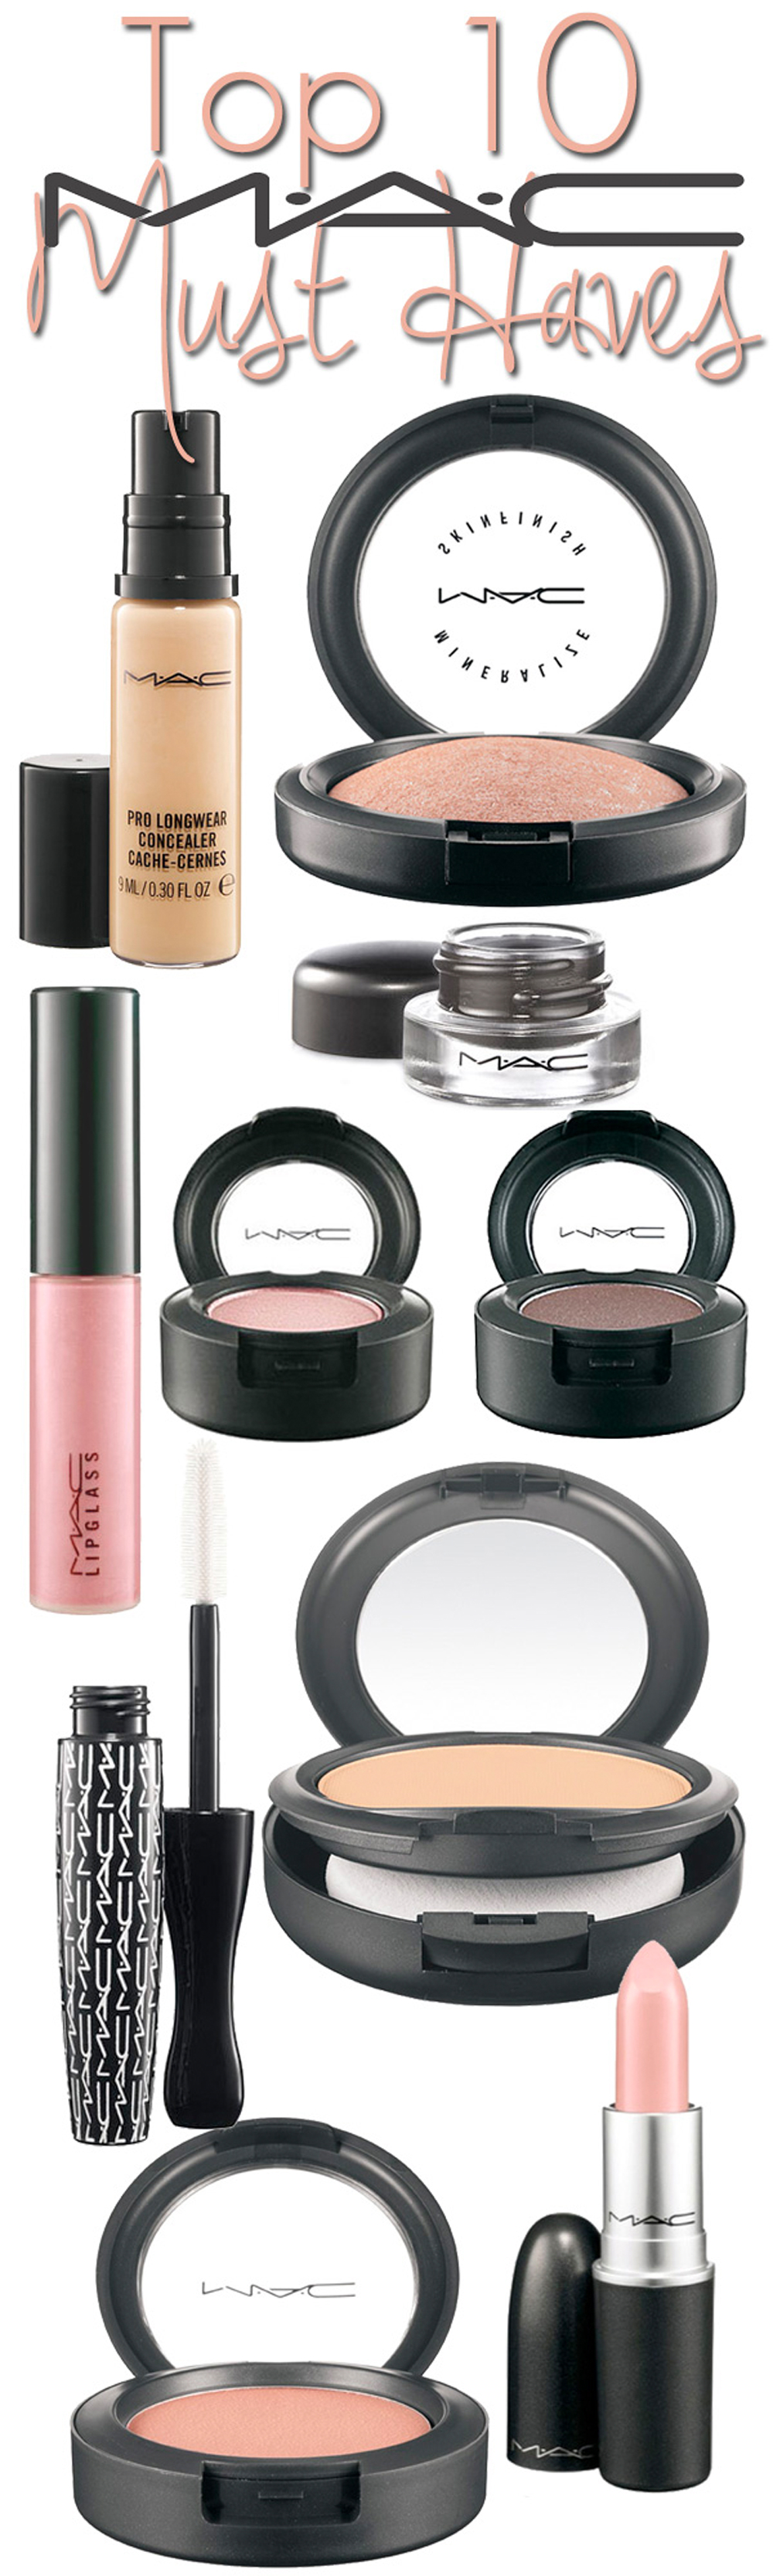 Top 10 MAC Products to Buy at Ulta Beauty